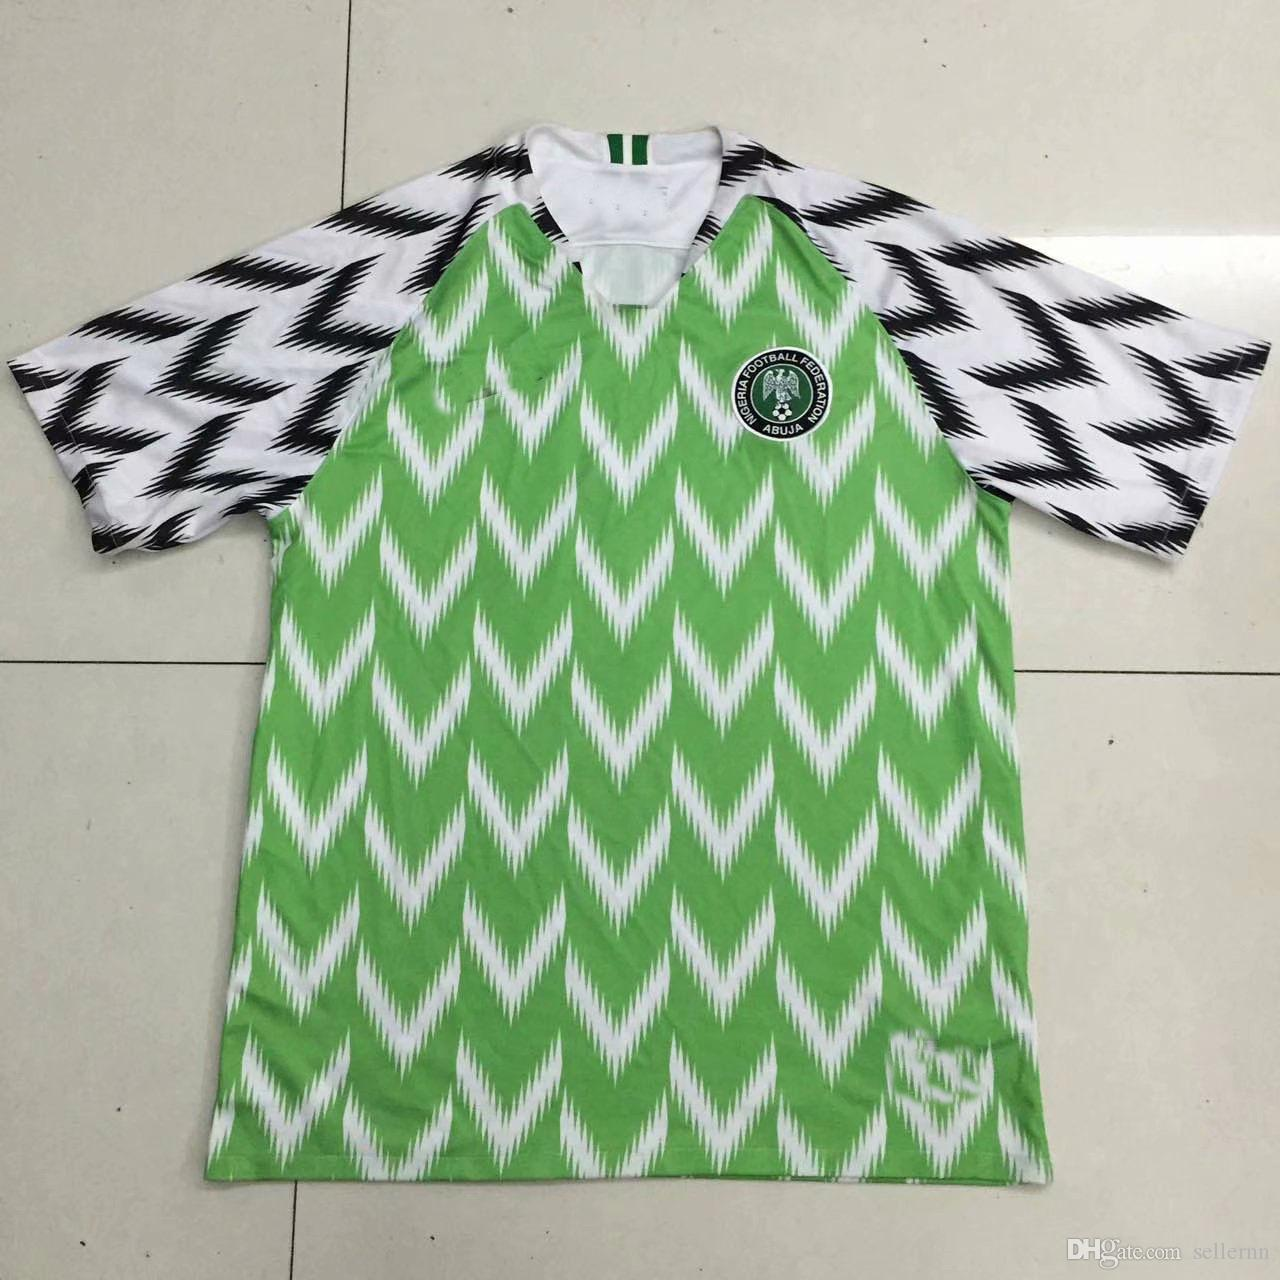 2019 Africa Cup Home and Away Soccer jersey 19 20 Customized Okechukwu OKOCHA AHMED MUSA MIKEL IHEANACHO Football shirt